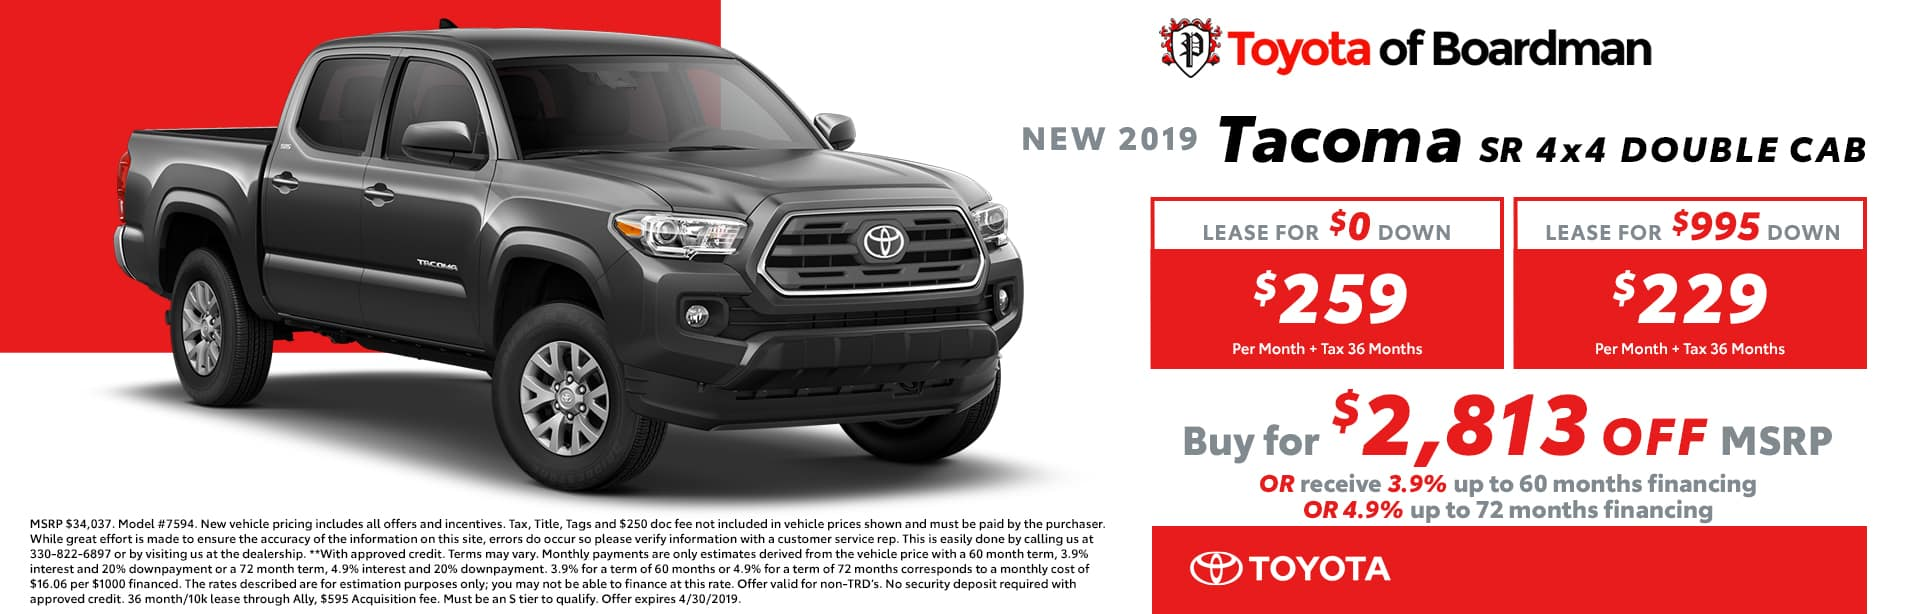 April Special on the 2019 Toyota Tacoma